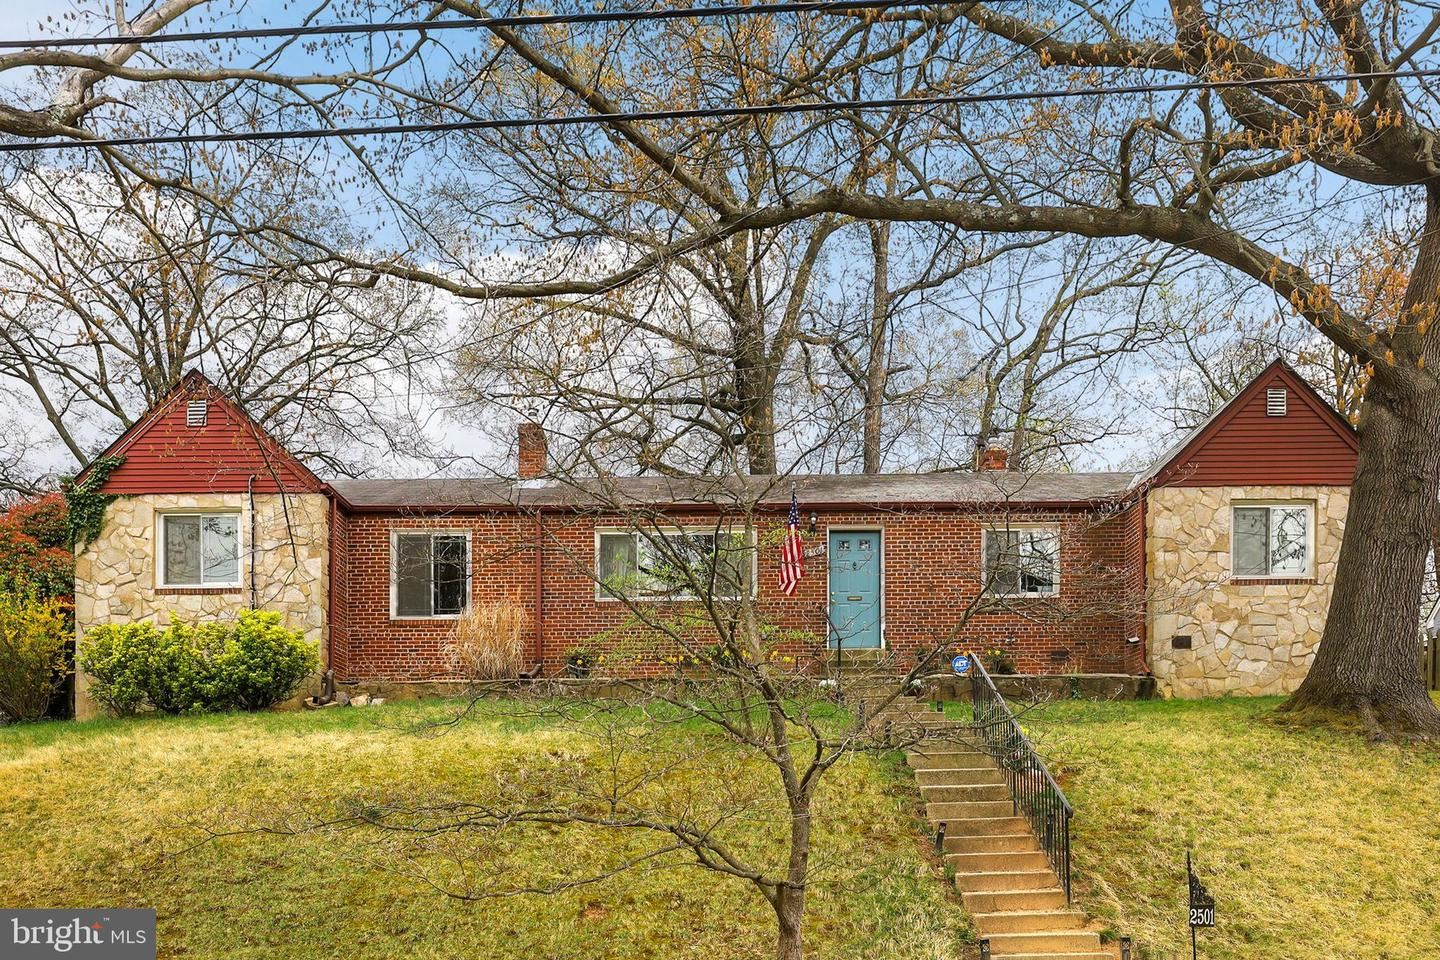 2501 LAKE AVE, Cheverly, MD 20785 - MLS#: MDPG563870